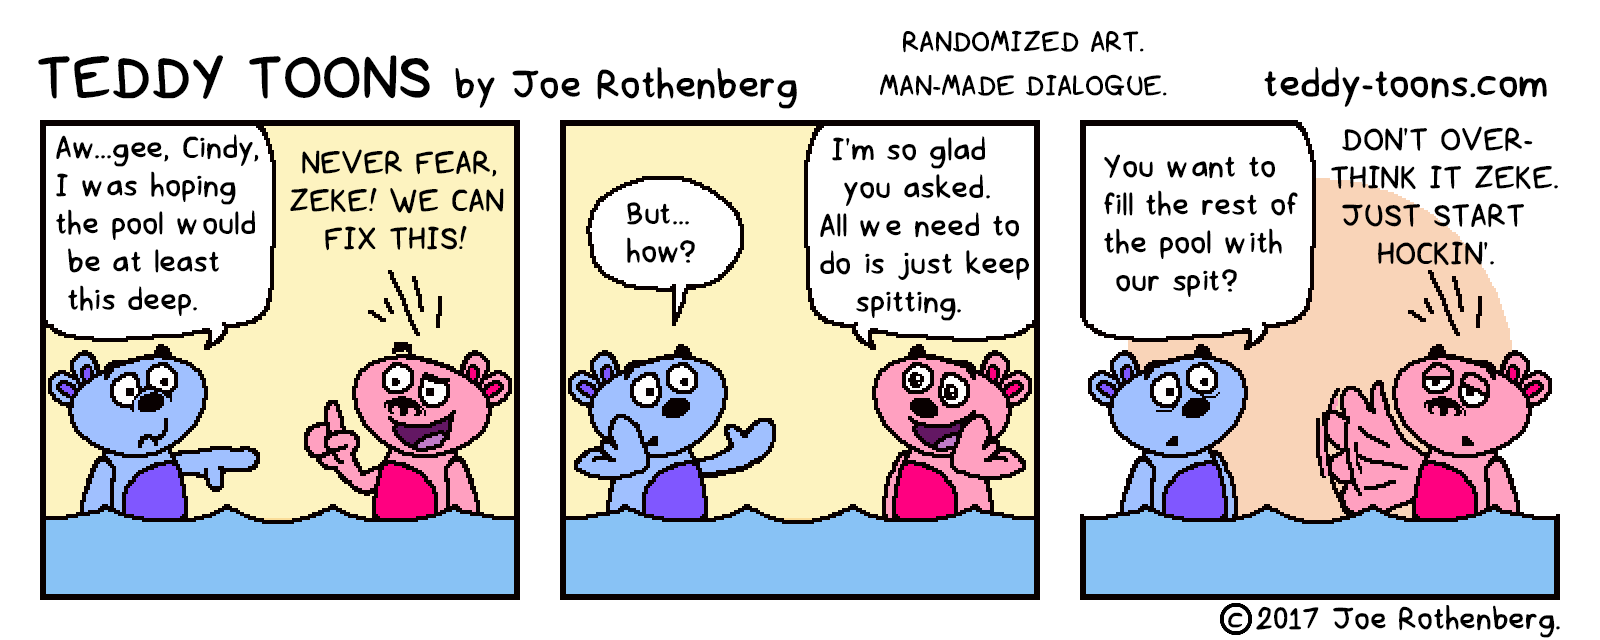 02-07-17.png